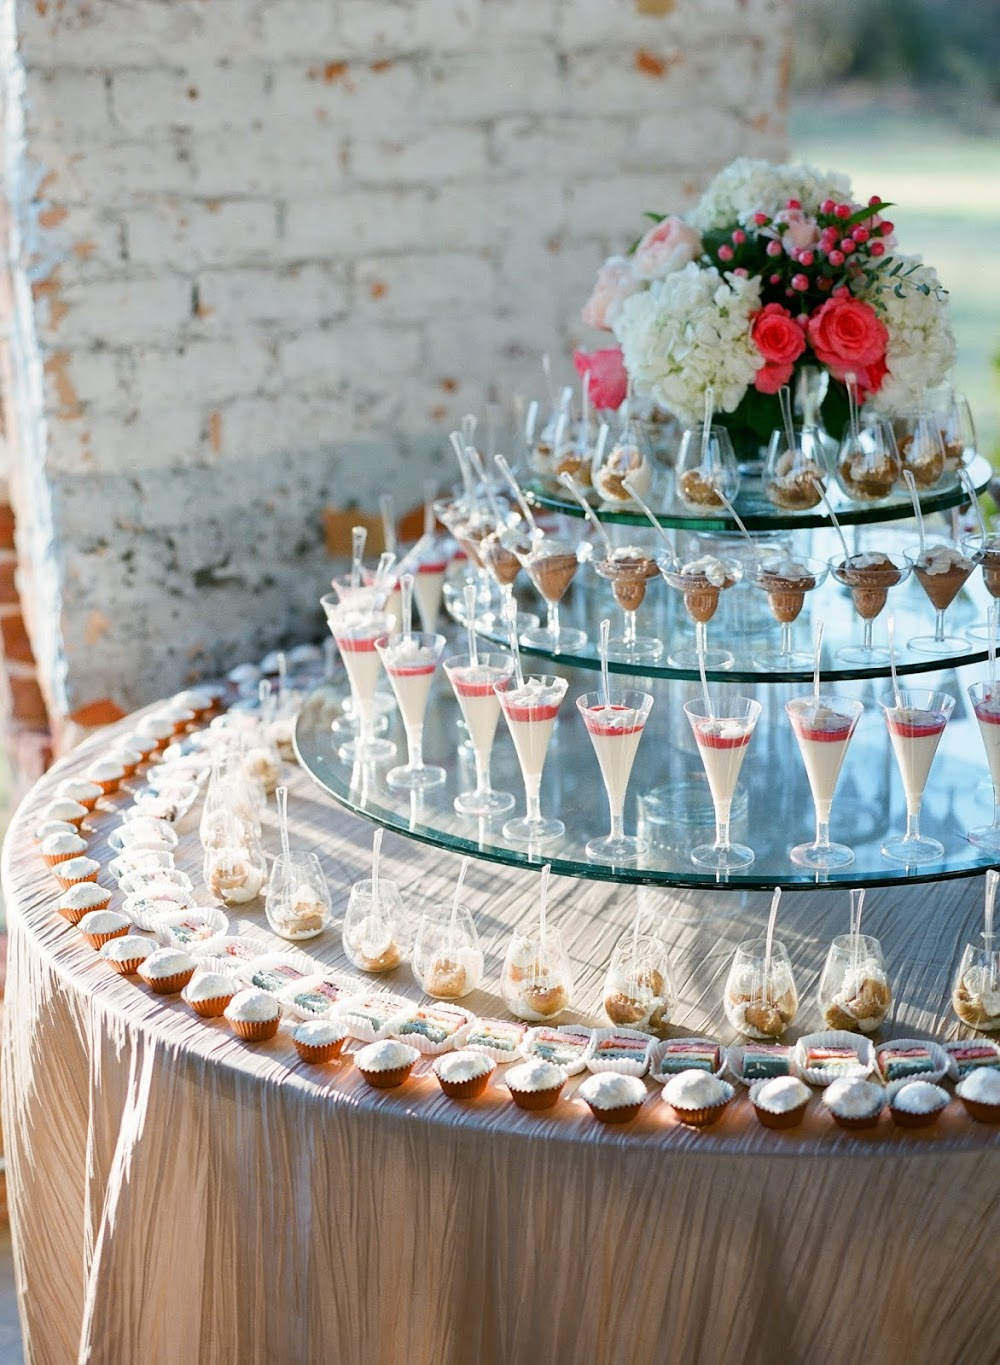 Sky's the Limit Bridal Sweets